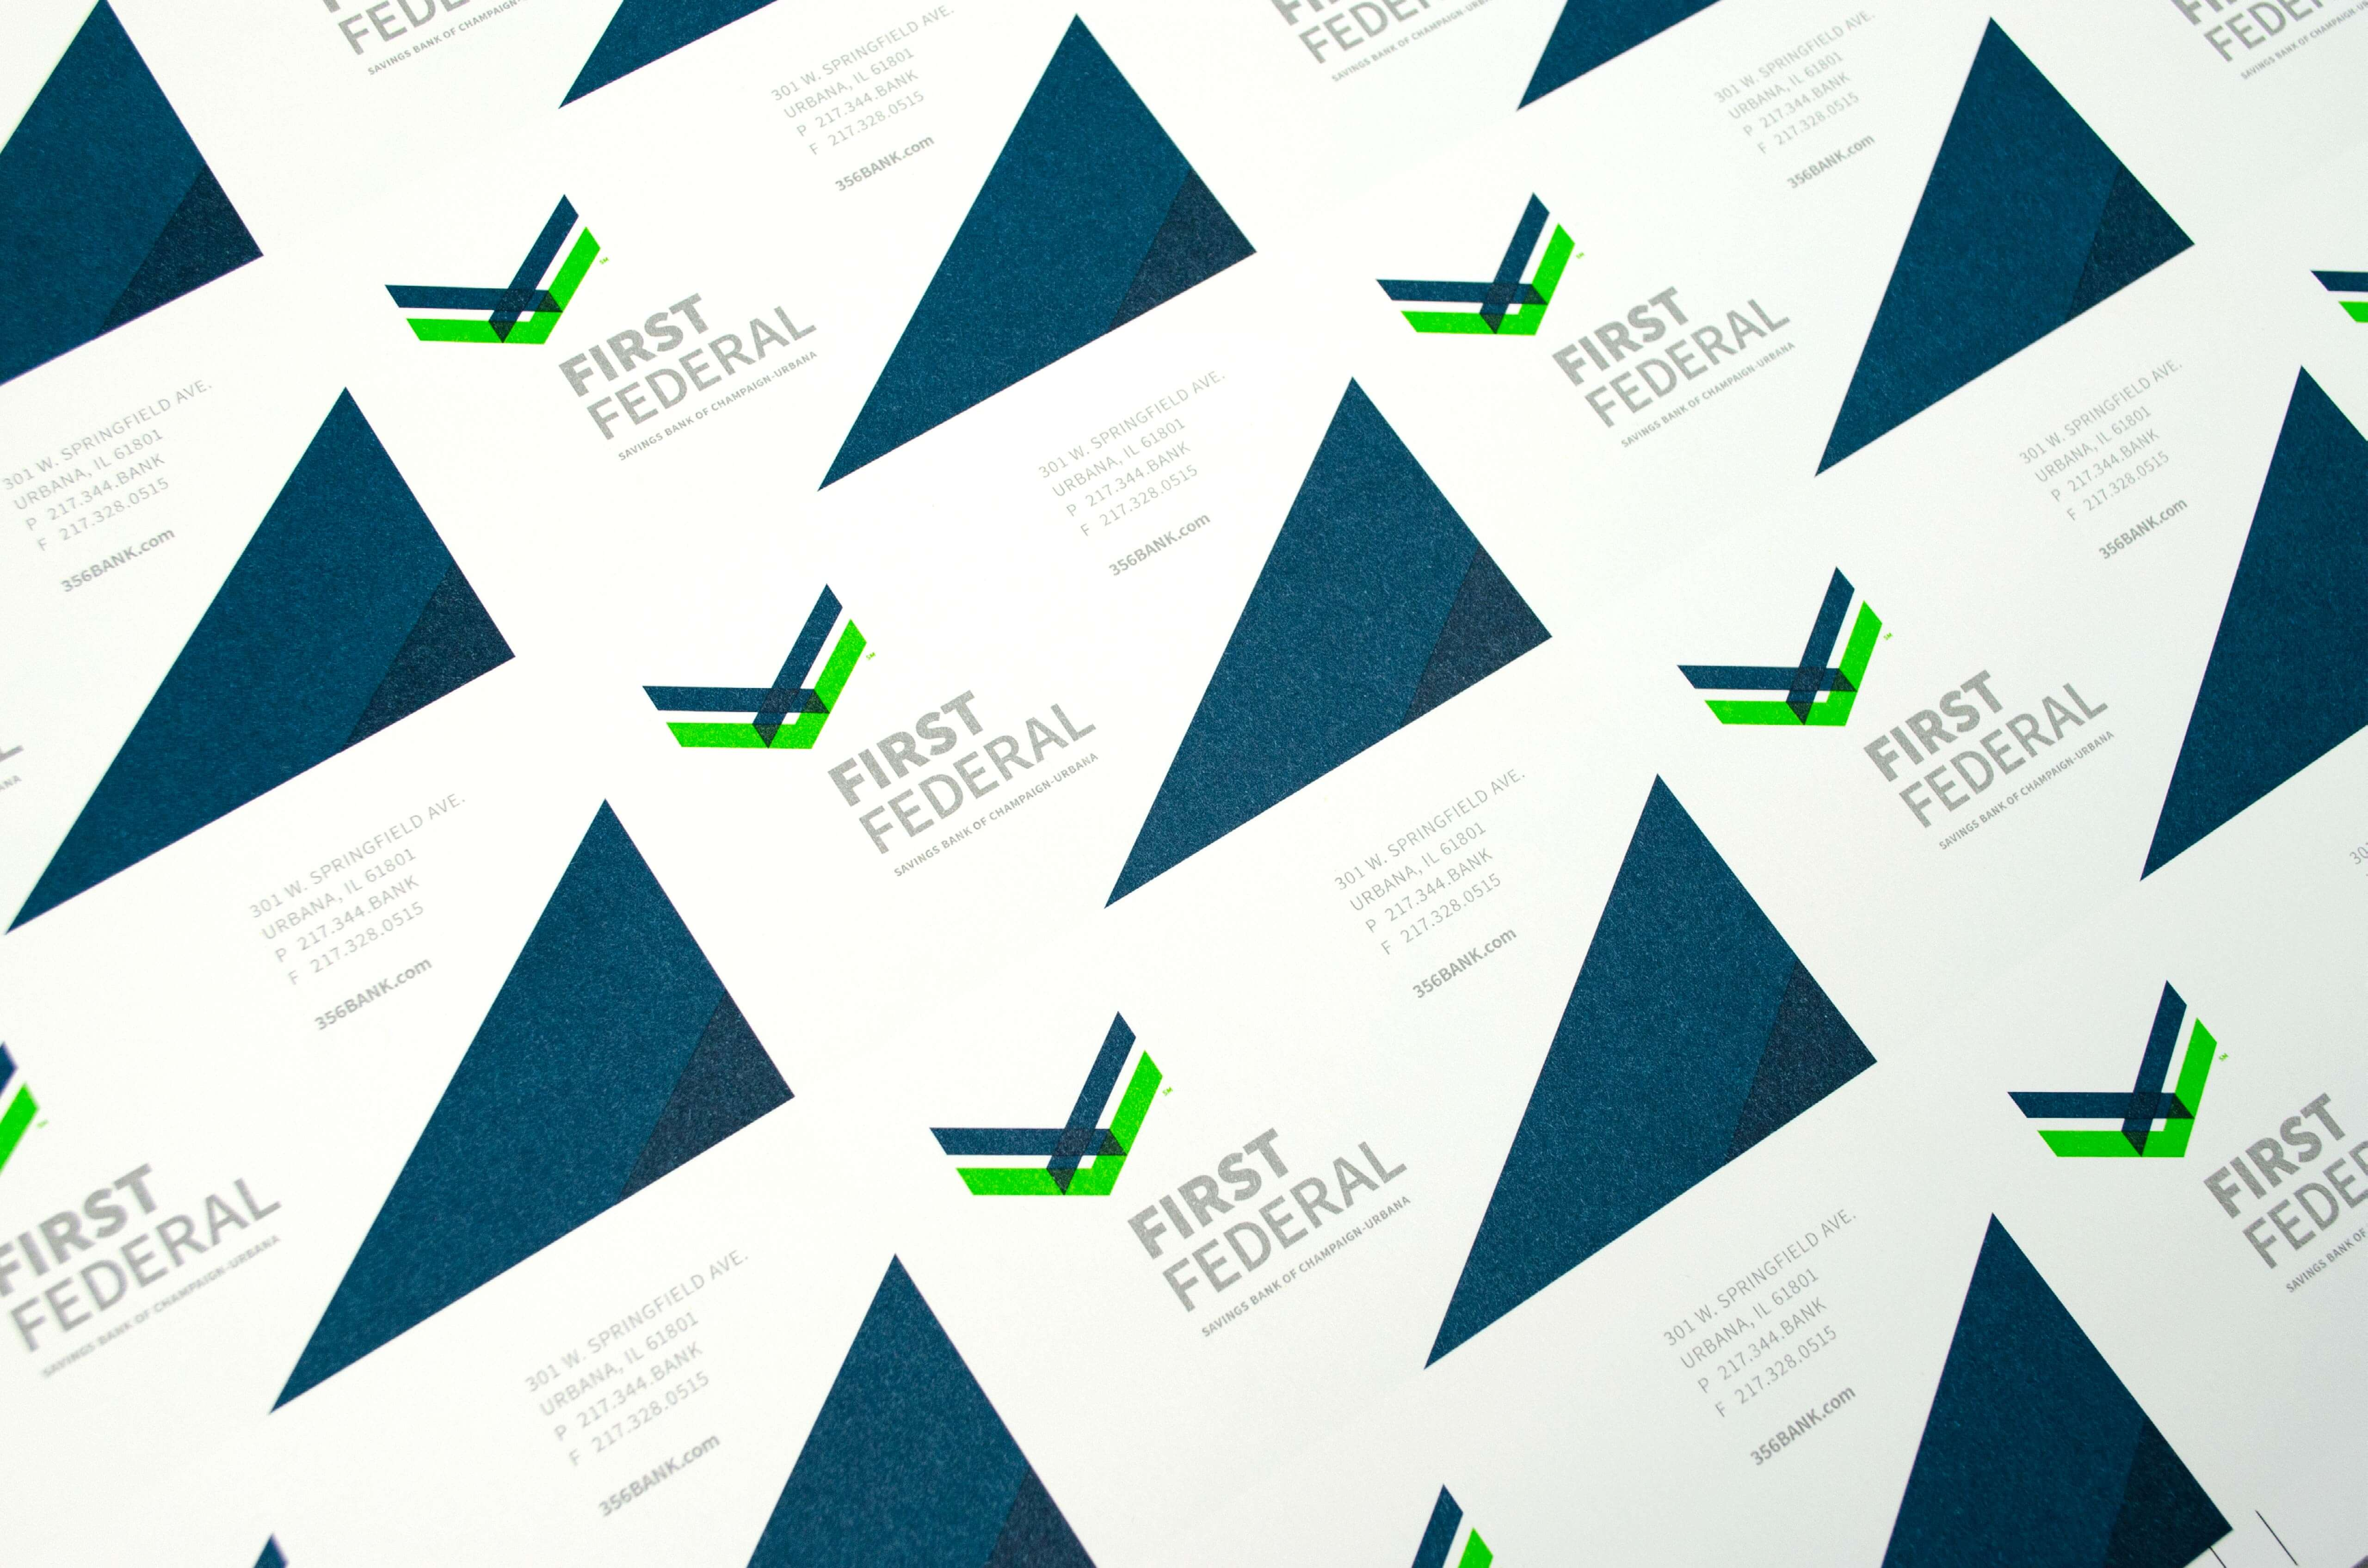 First Federal Savings Bank of Champaign-Urbana Corporate Identity